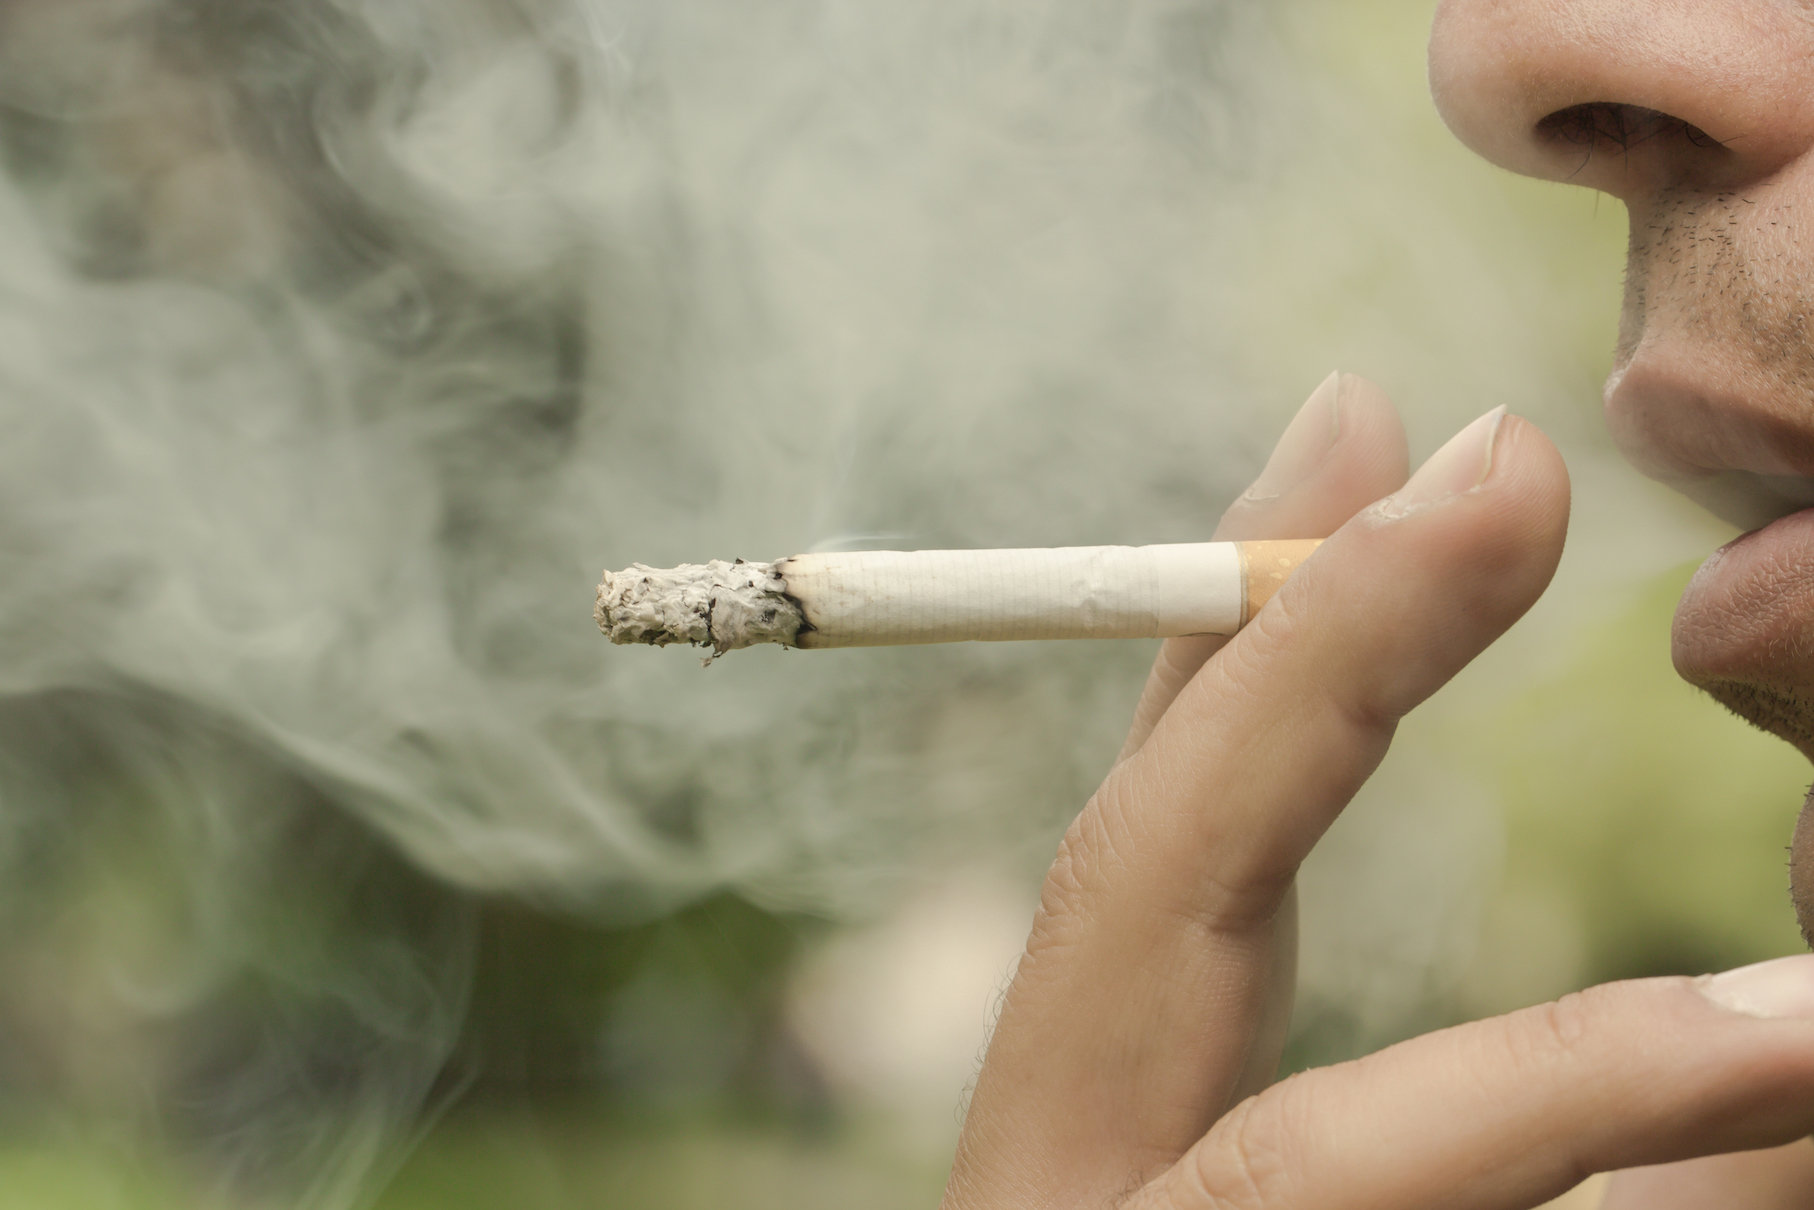 A new study has found that chemical residue from cigarette smoke, also known as third-hand smoke, can attach to clothes, hair, and surfaces, and these pollutants make their way indoors, even in non-smoking buildings.A new study has found that chemical residue from cigarette smoke, also known as third-hand smoke, can attach to clothes, hair, and surfaces, and these pollutants make their way indoors, even in non-smoking buildings.